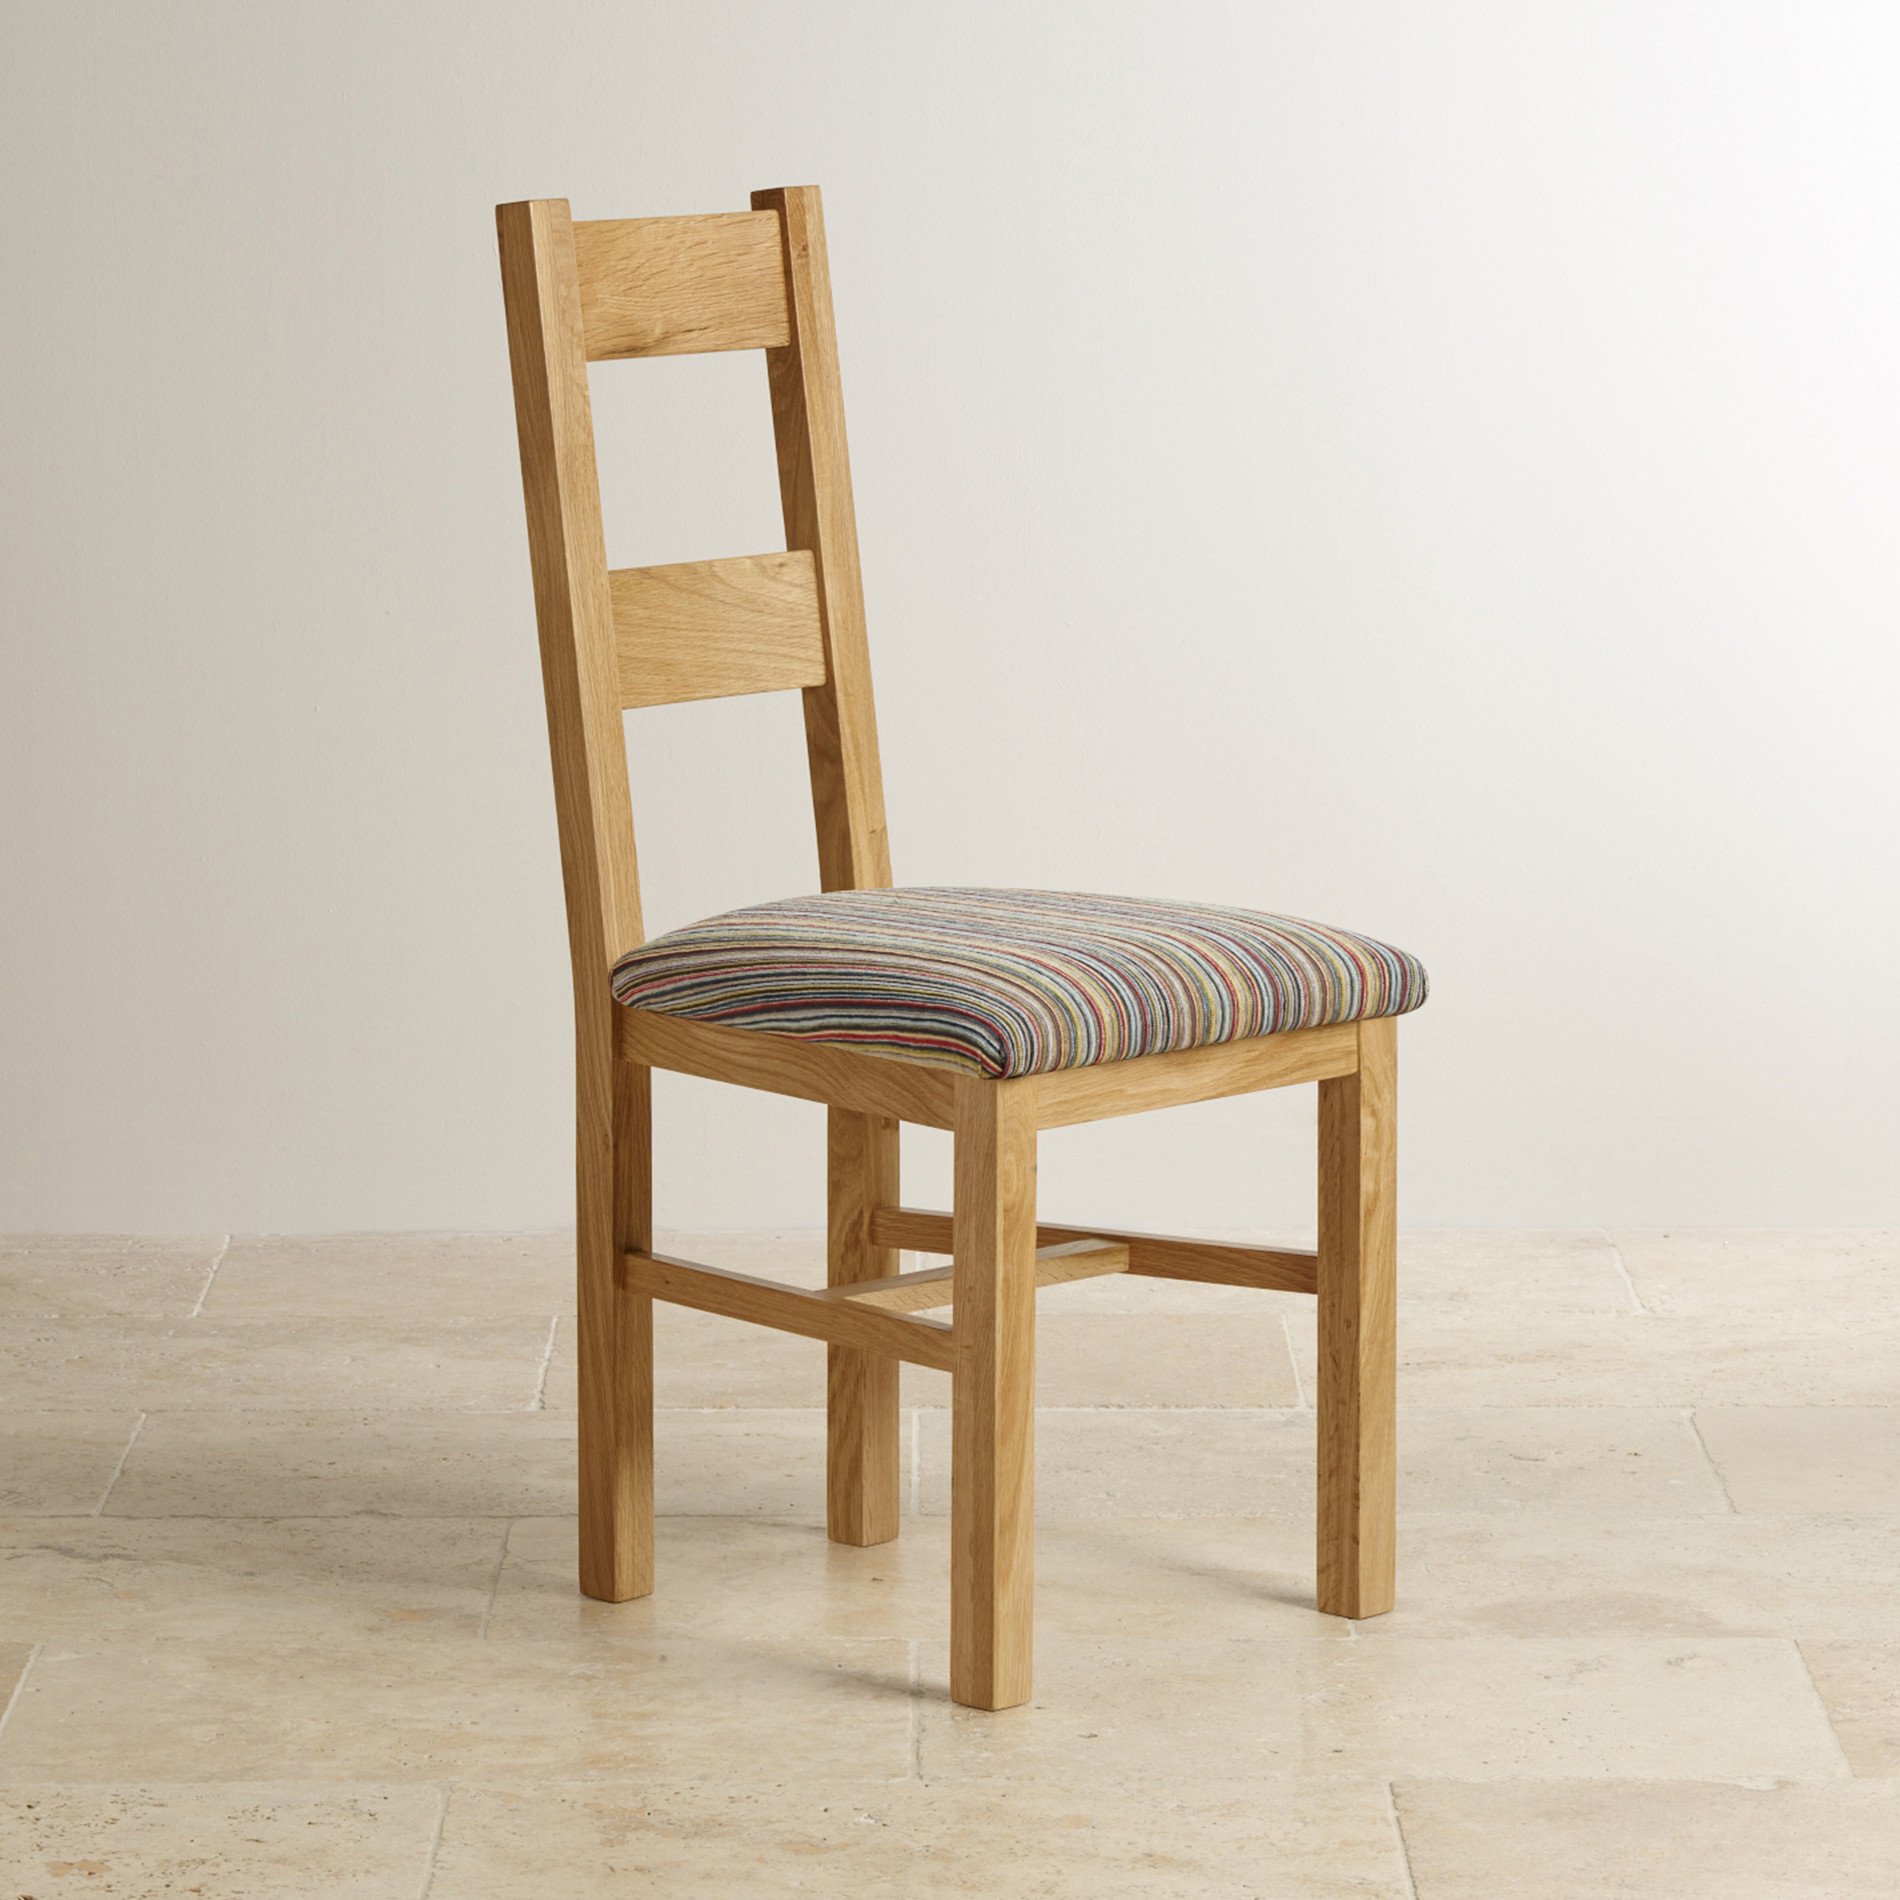 oak farmhouse chairs chair cover rentals long island ny natural solid and multi striped patterned